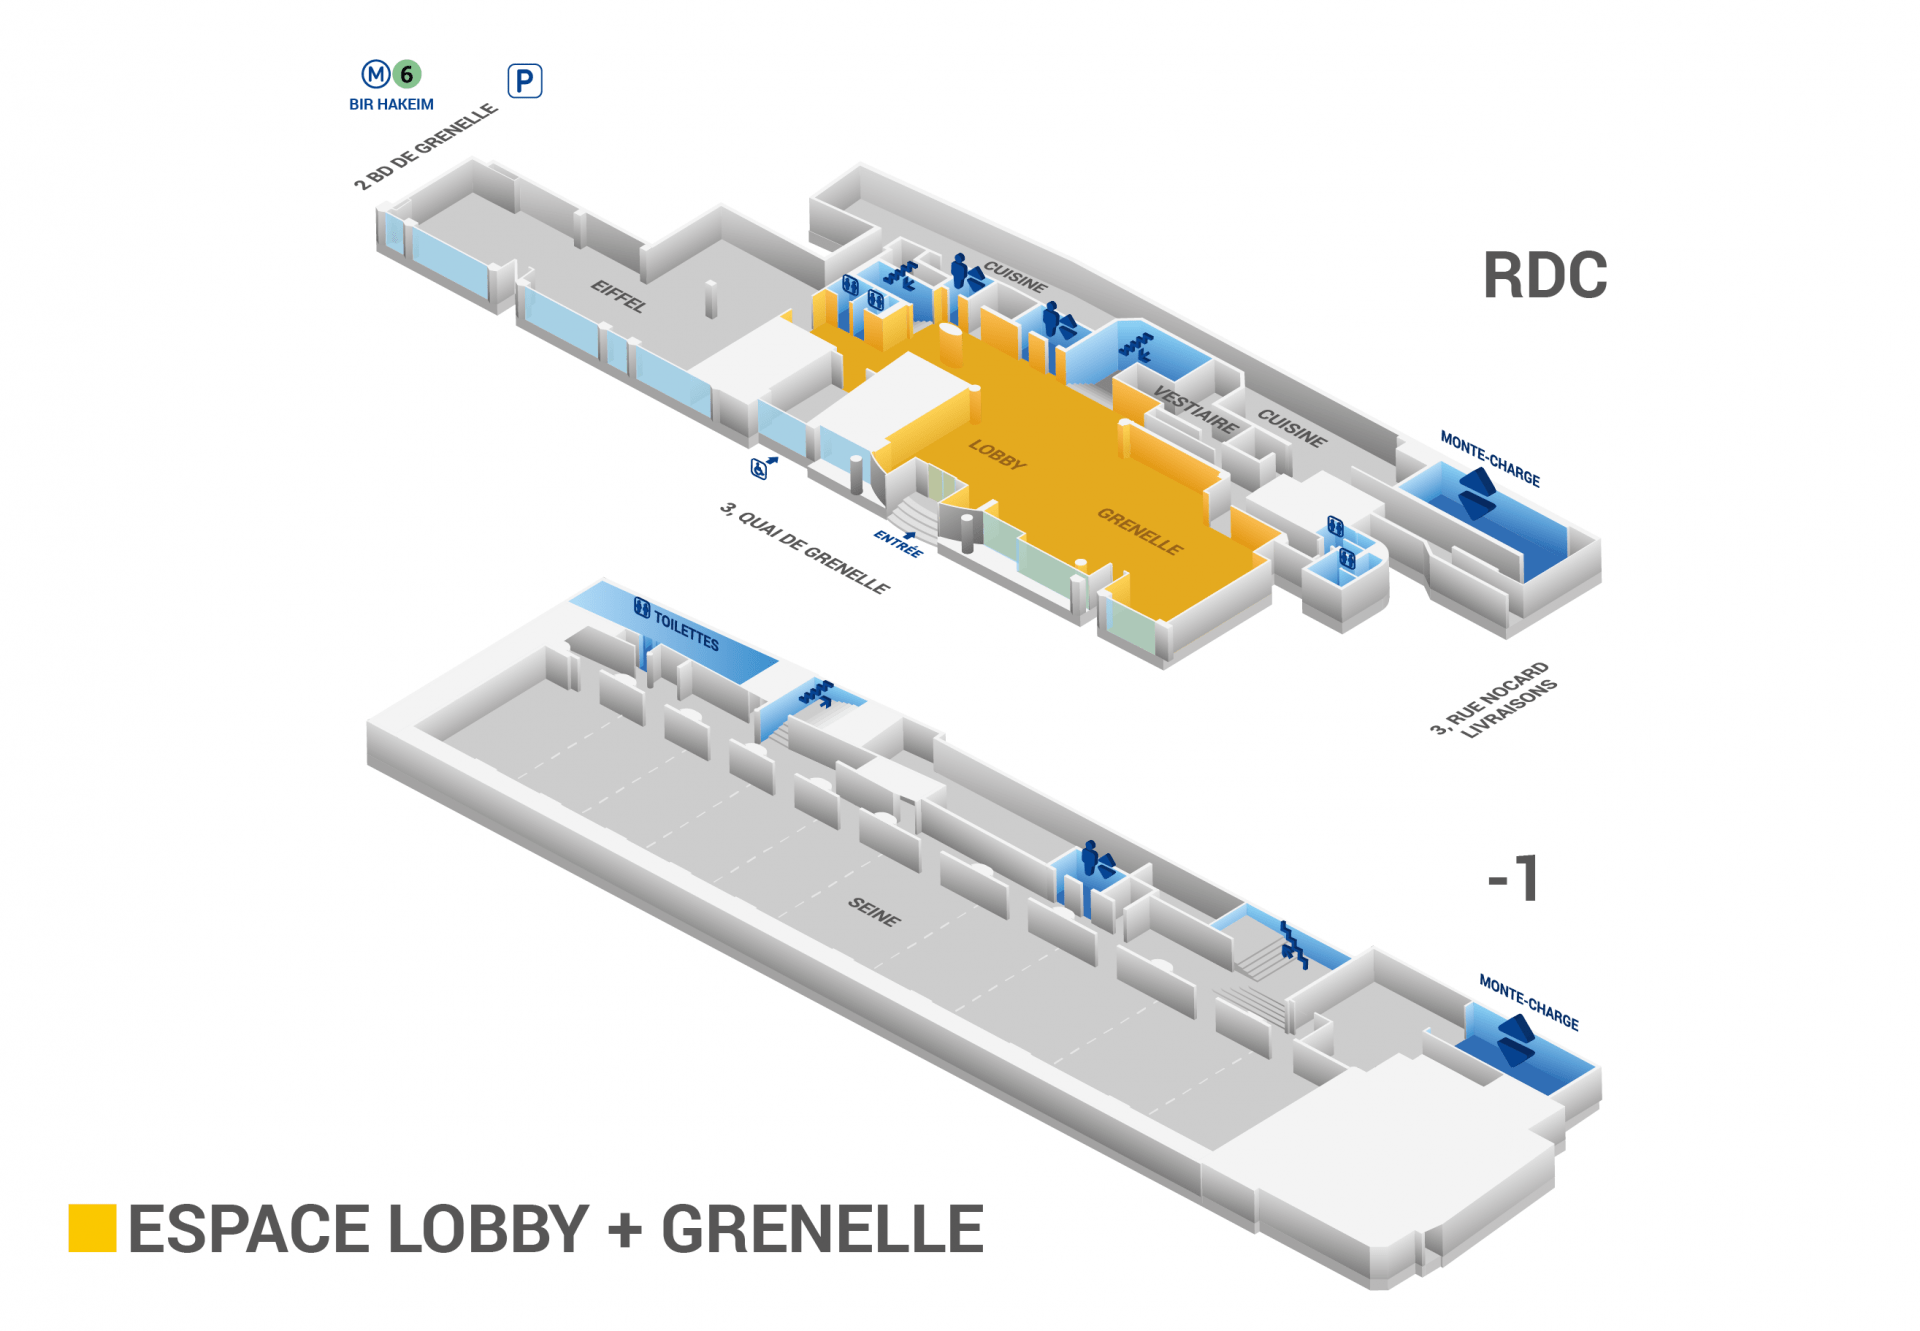 Plan Lobby & Grenelle